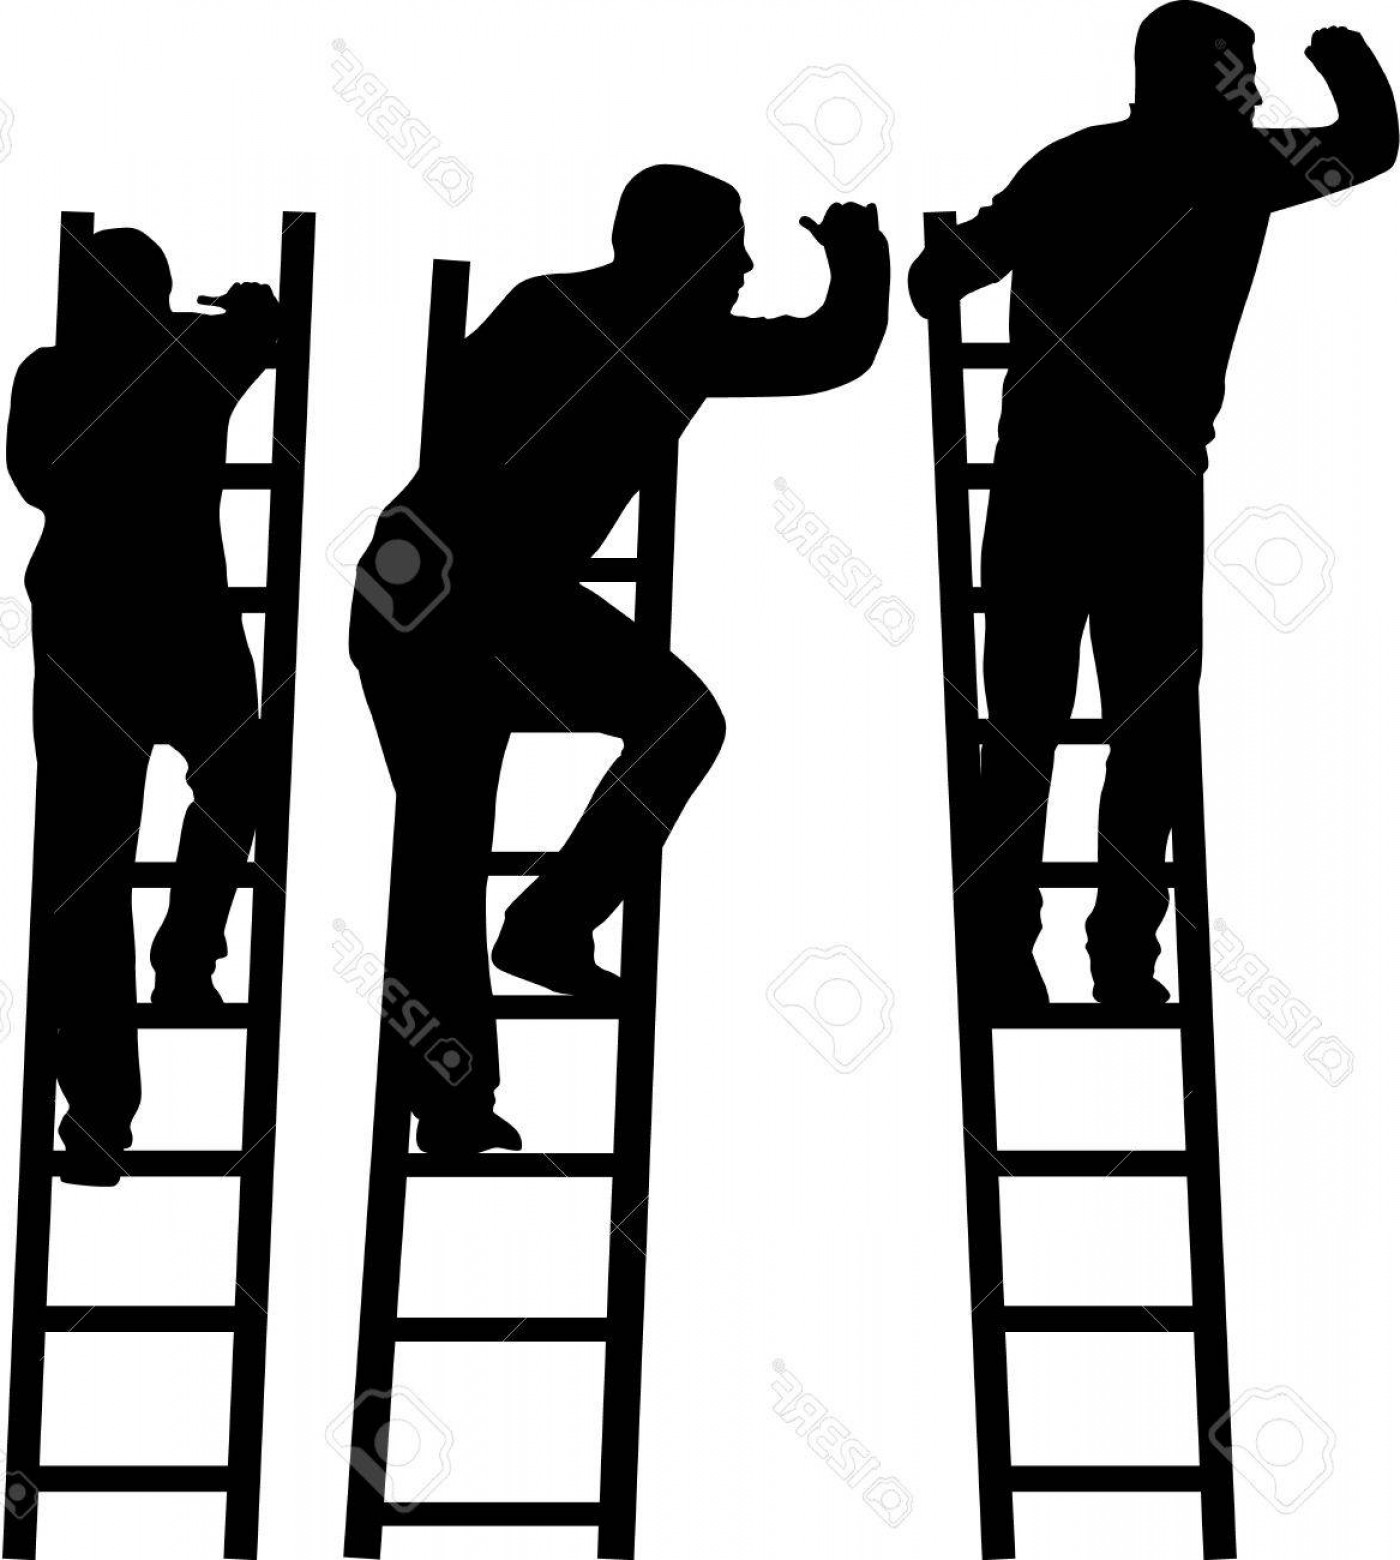 Ladder Silhouette Vector: Photostock Vector Silhouette Of A Man On A Ladder